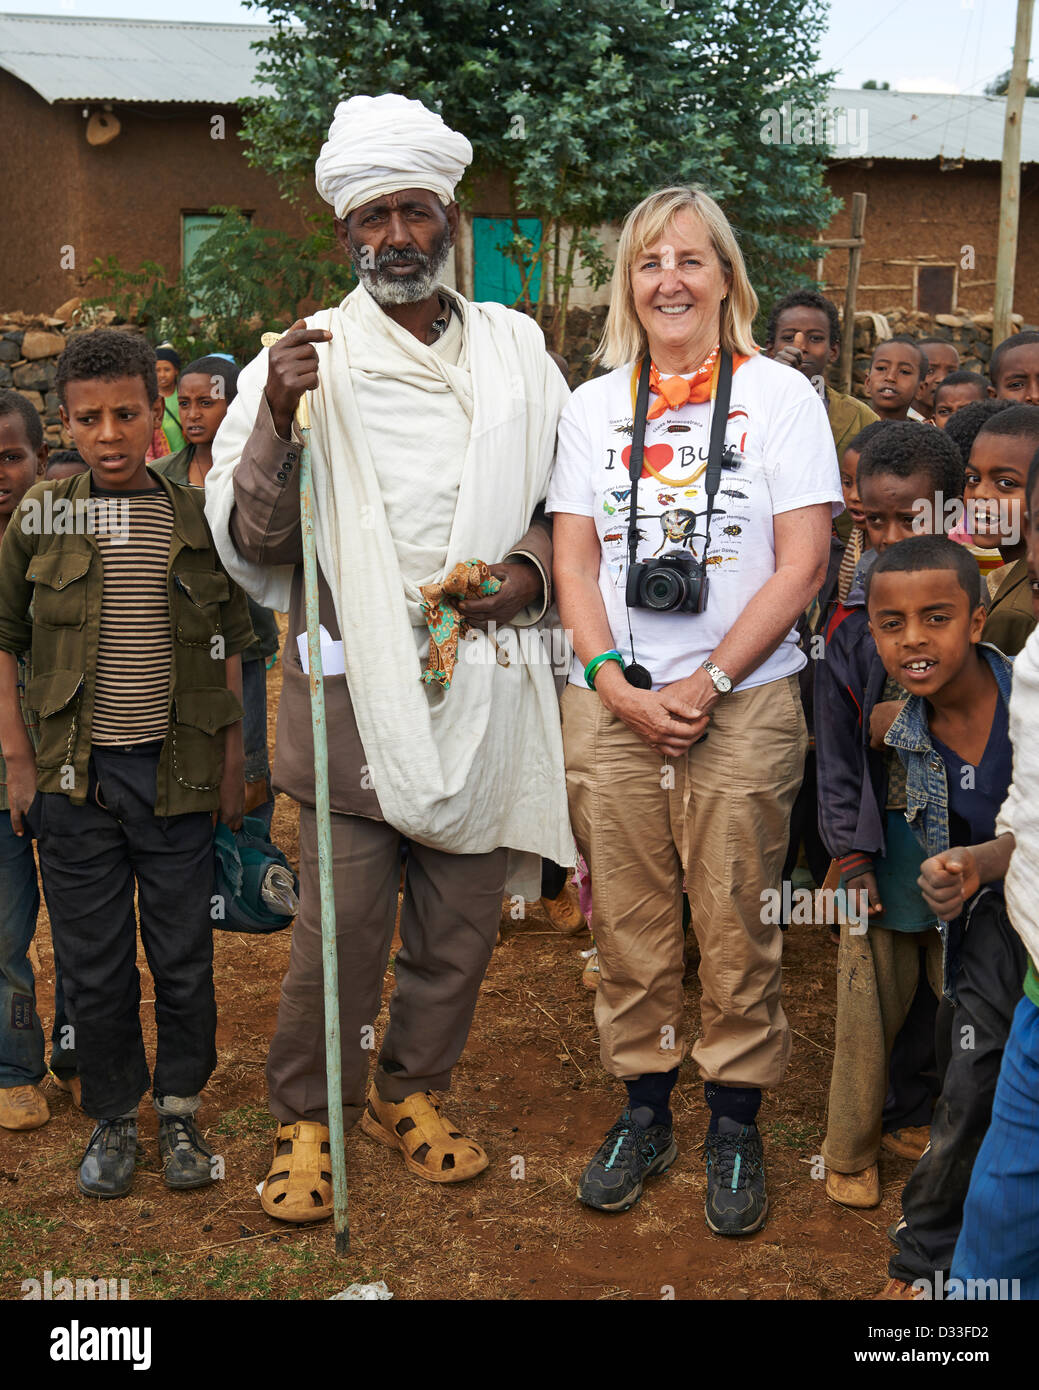 "Margaret D. Lowman or ""Canopy Meg"" poses with a group of children and a priest in Bahir Dar Stock Photo"